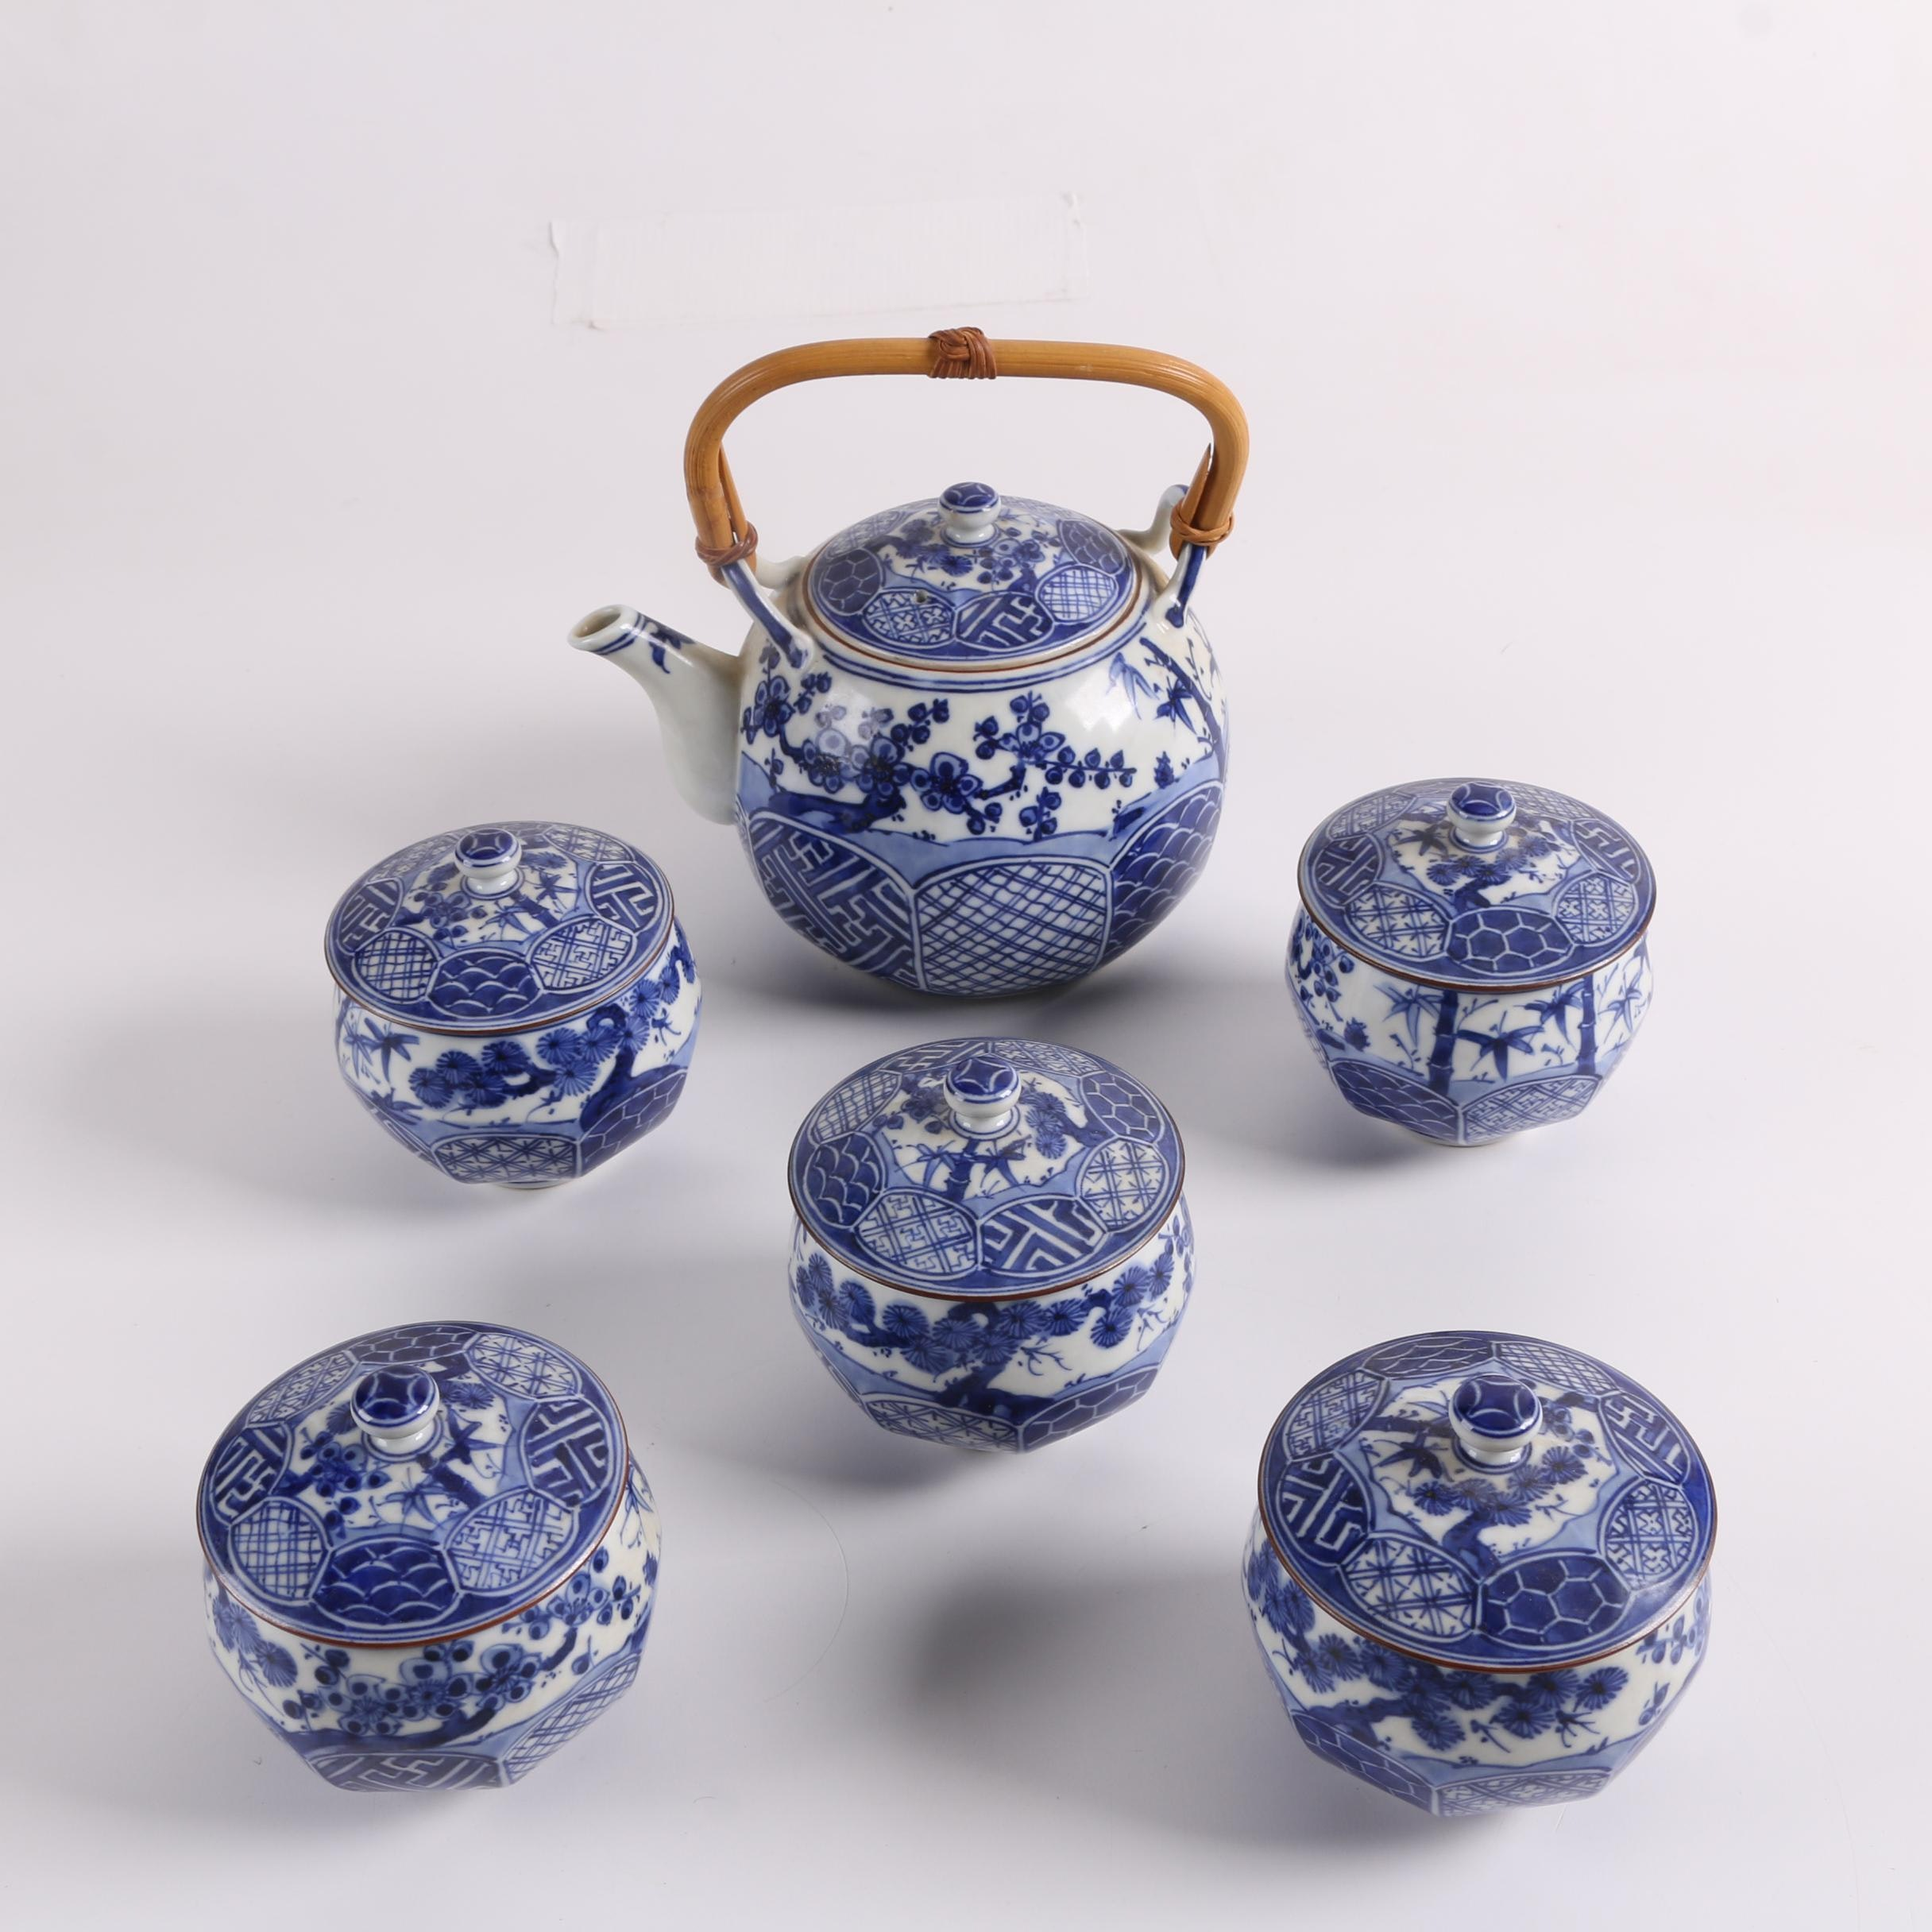 Japanese Blue and White Porcelain Tea Set with Lidded Cups